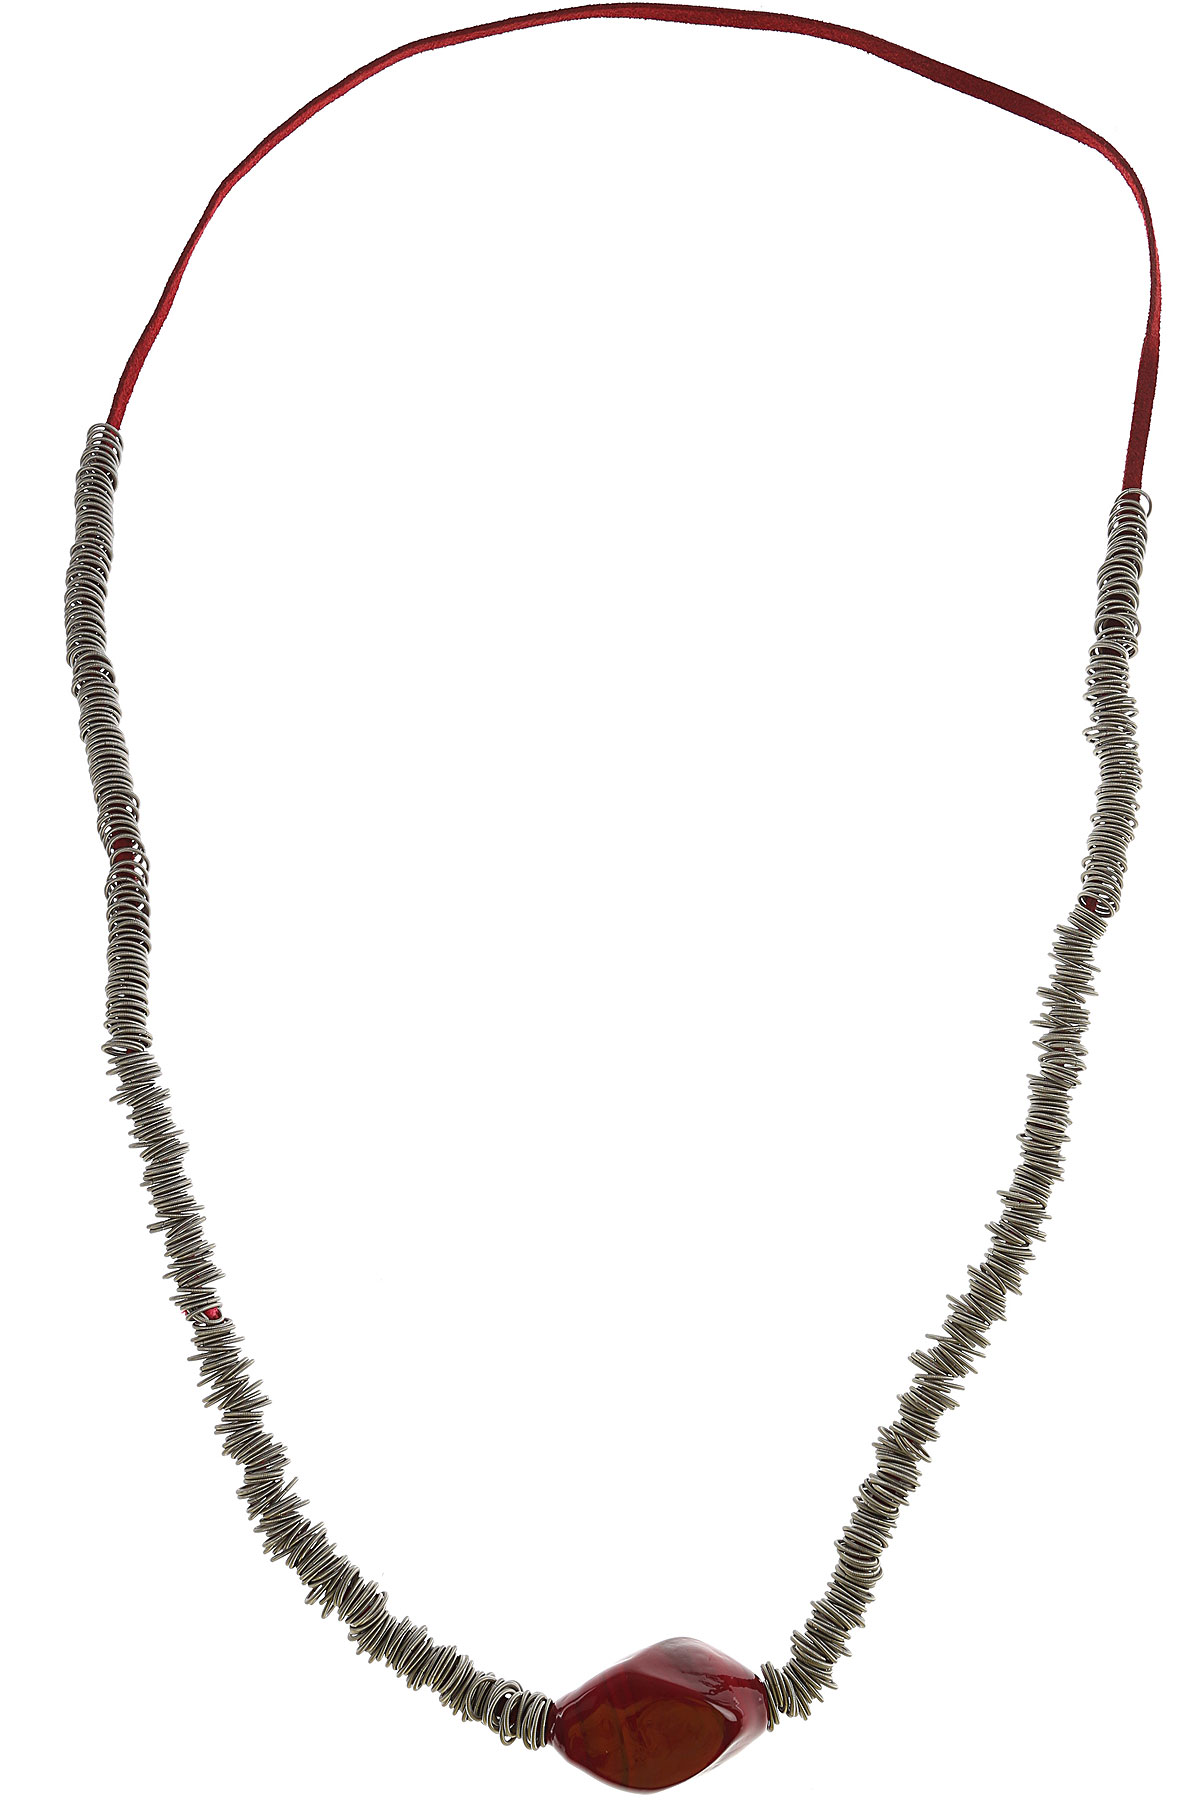 Image of Antares Venezia Necklaces, Red, Stainless Steel, 2017